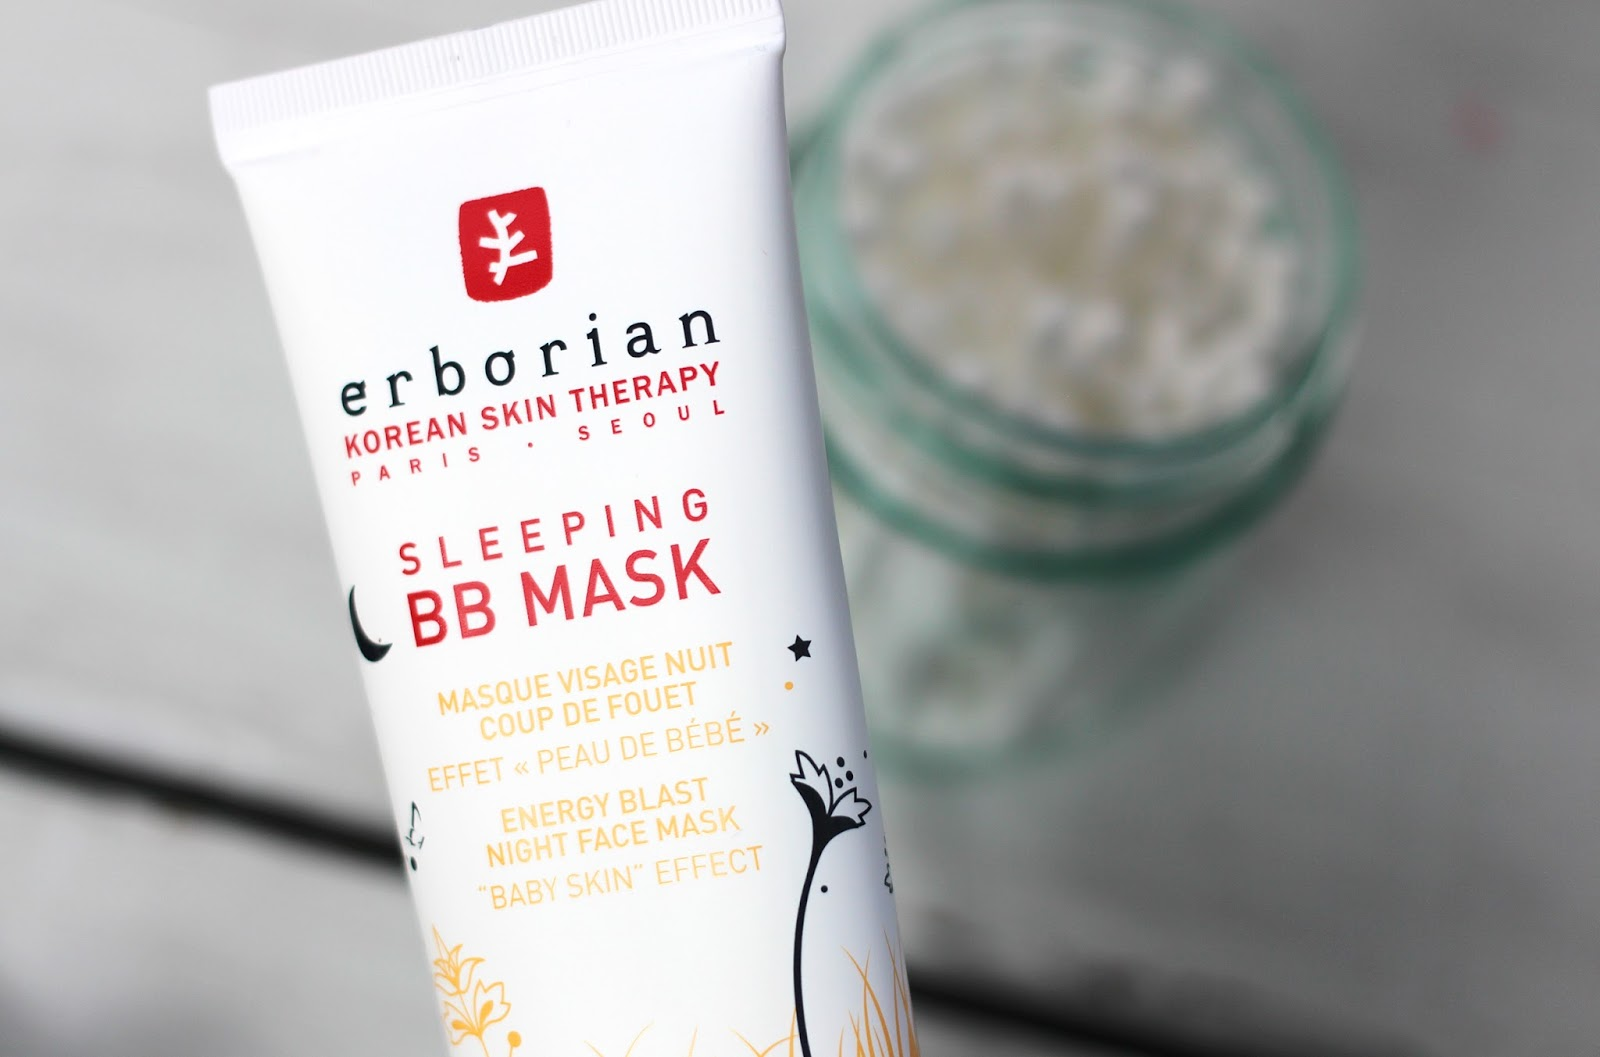 Beauty blogger reviews Korean skincare brand Erborian featuring Herbal Energy Cleanser, BB Sleeping Mask and High Definition Radiance CC Creme